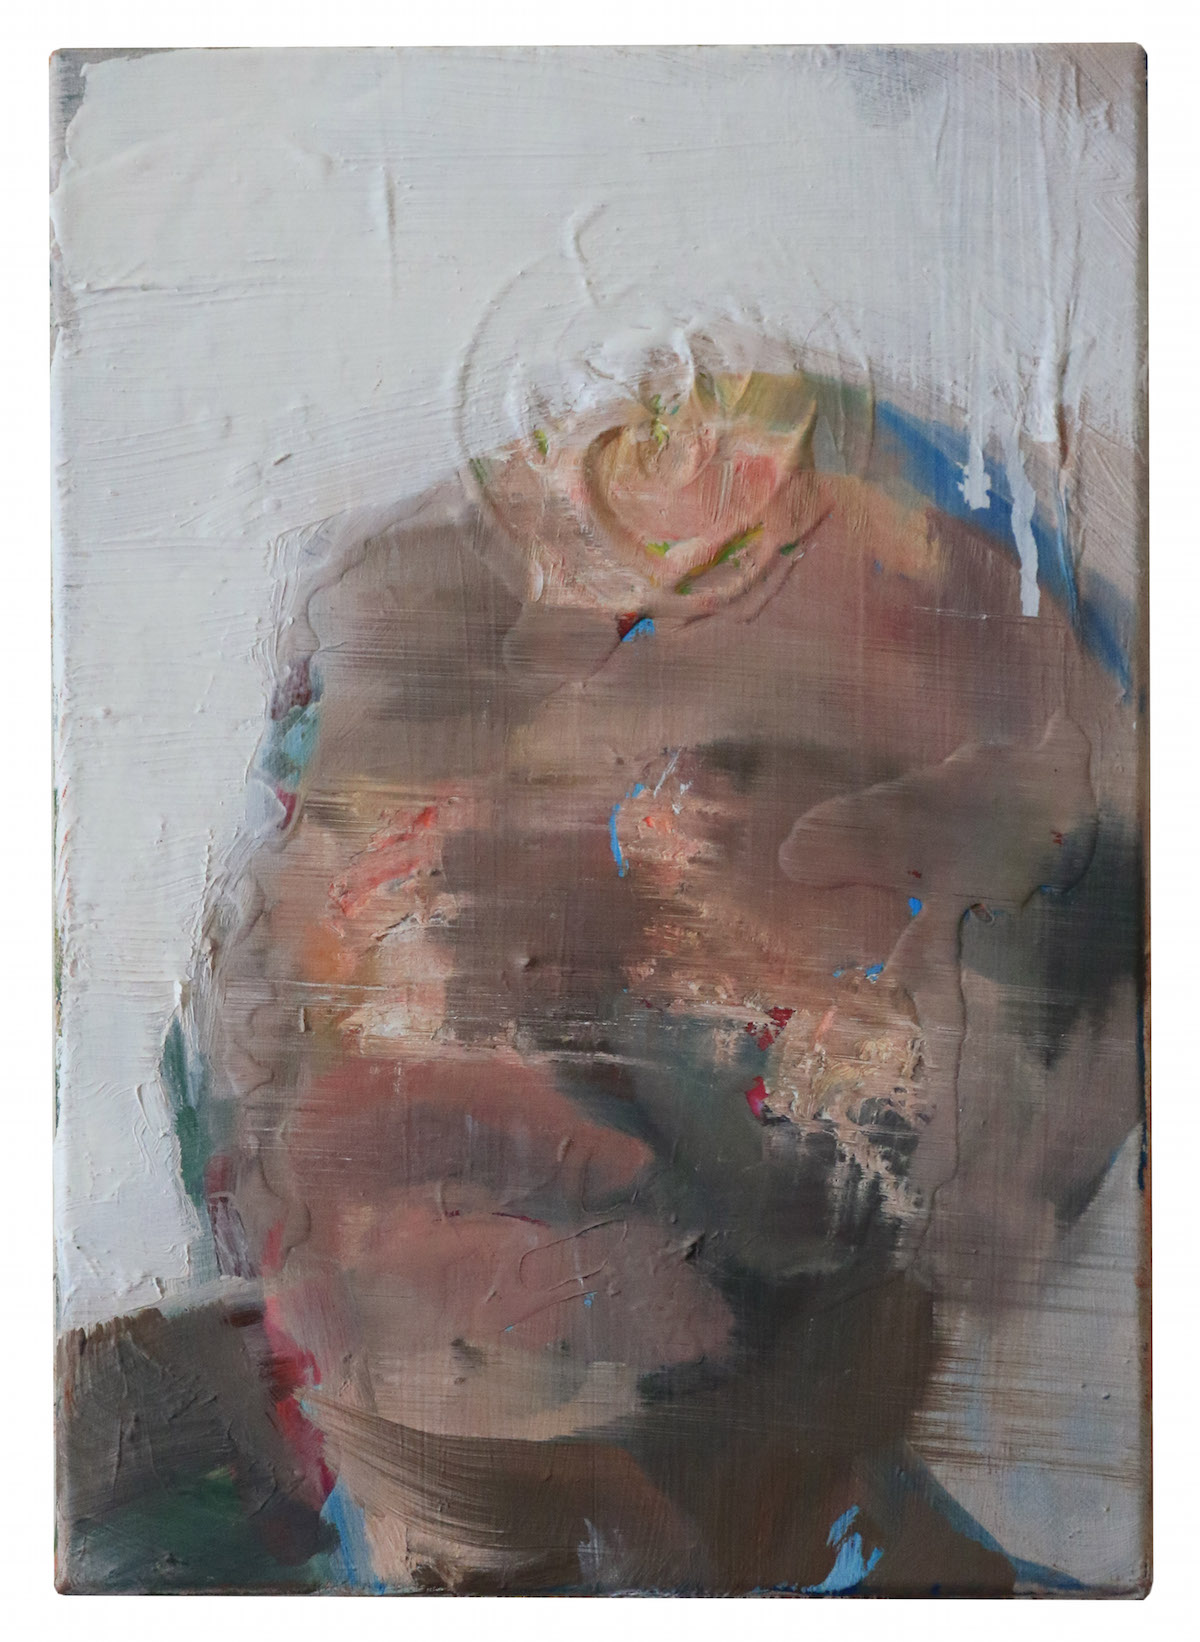 ANTONY MICALLEF b. 1975 Self-Portrait 6­